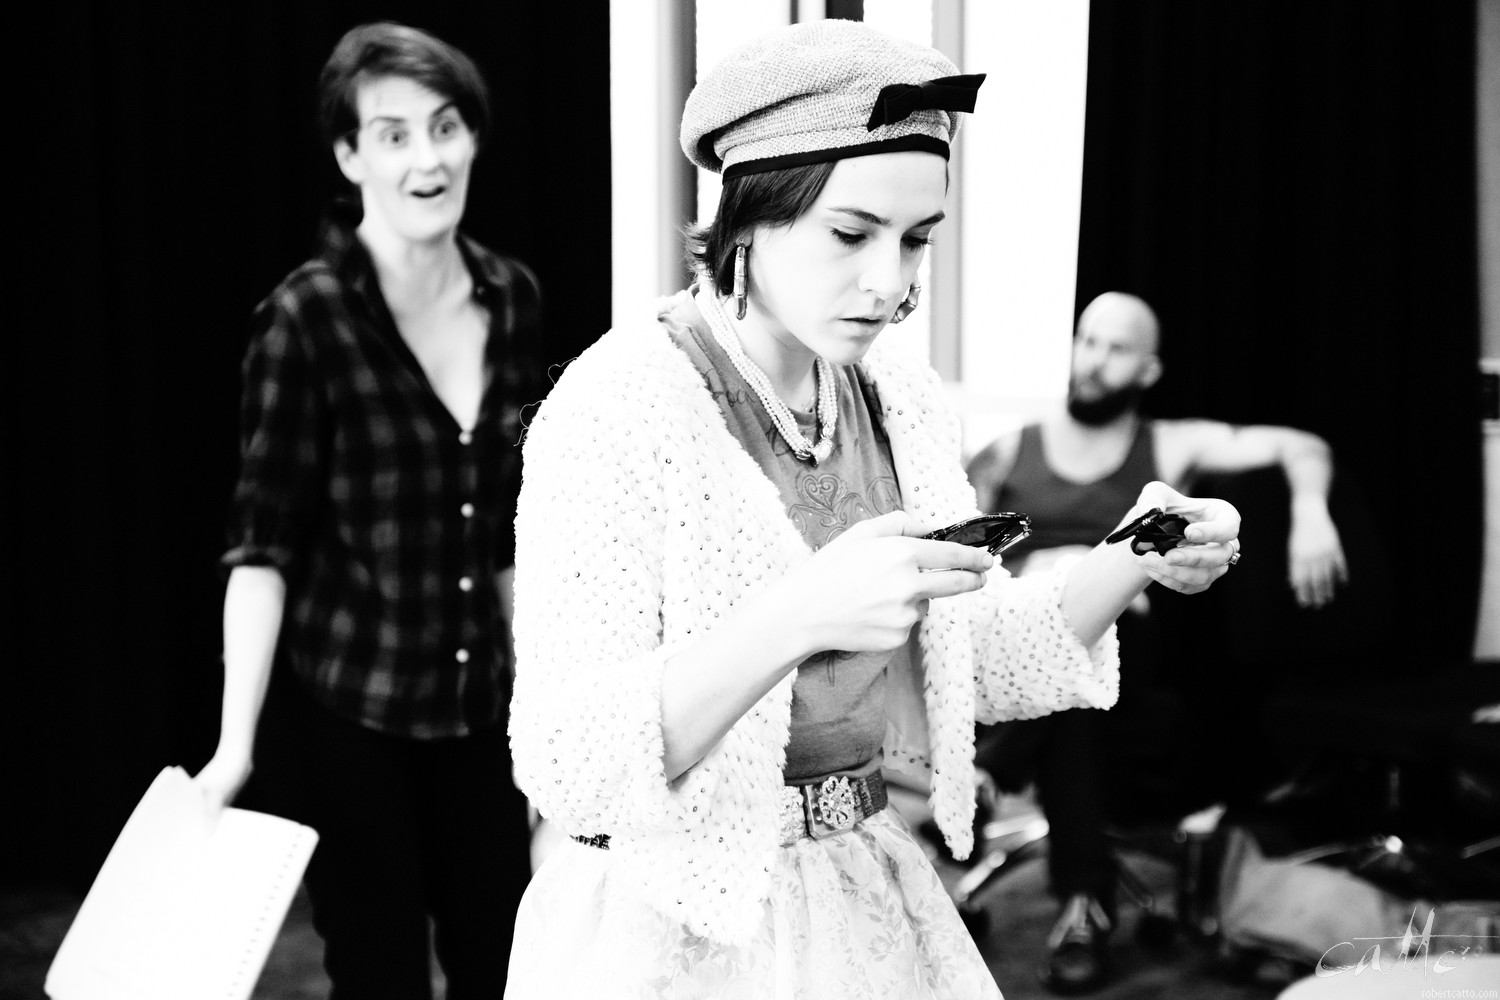 Cecilia Morrow and Kate Cheel Morgan Maguire in rehearsal for Home Invasion (Fuji X-H1 with 16-55mm f/2.8)